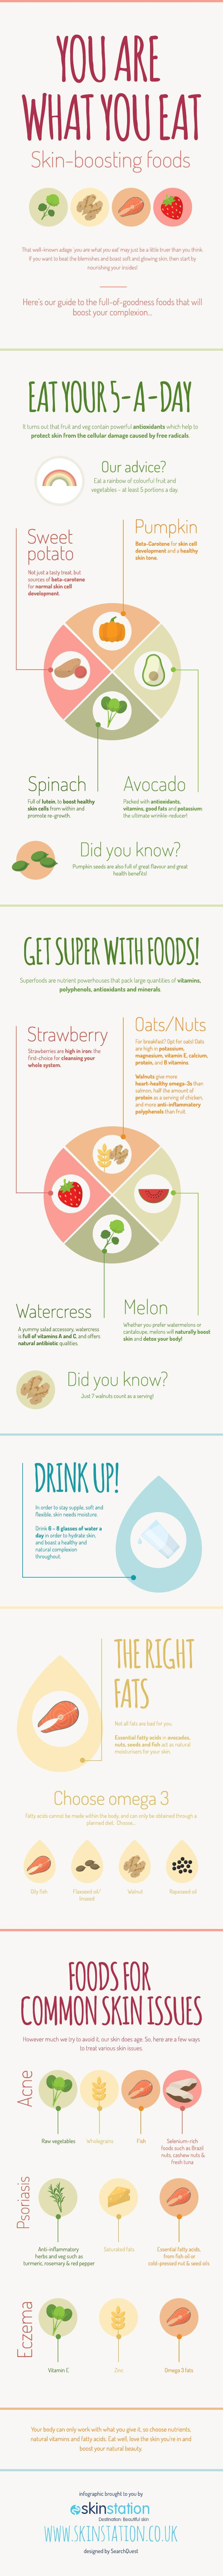 You Are What You #Eat - Do you fancy an infographic? There are a lot of them online, but if you want your own please visit http://www.linfografico.com/prezzi/ Online girano molte infografiche, se ne vuoi realizzare una tutta tua visita http://www.linfogra